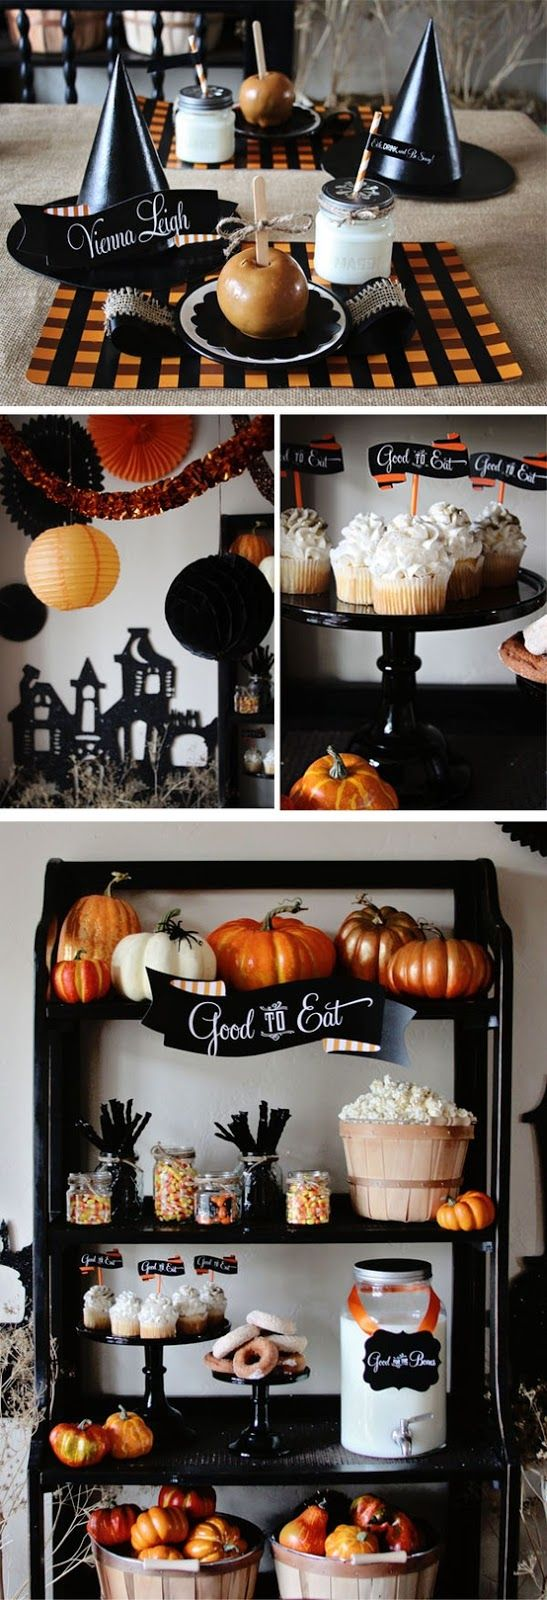 84 best Halloween Party images on Pinterest